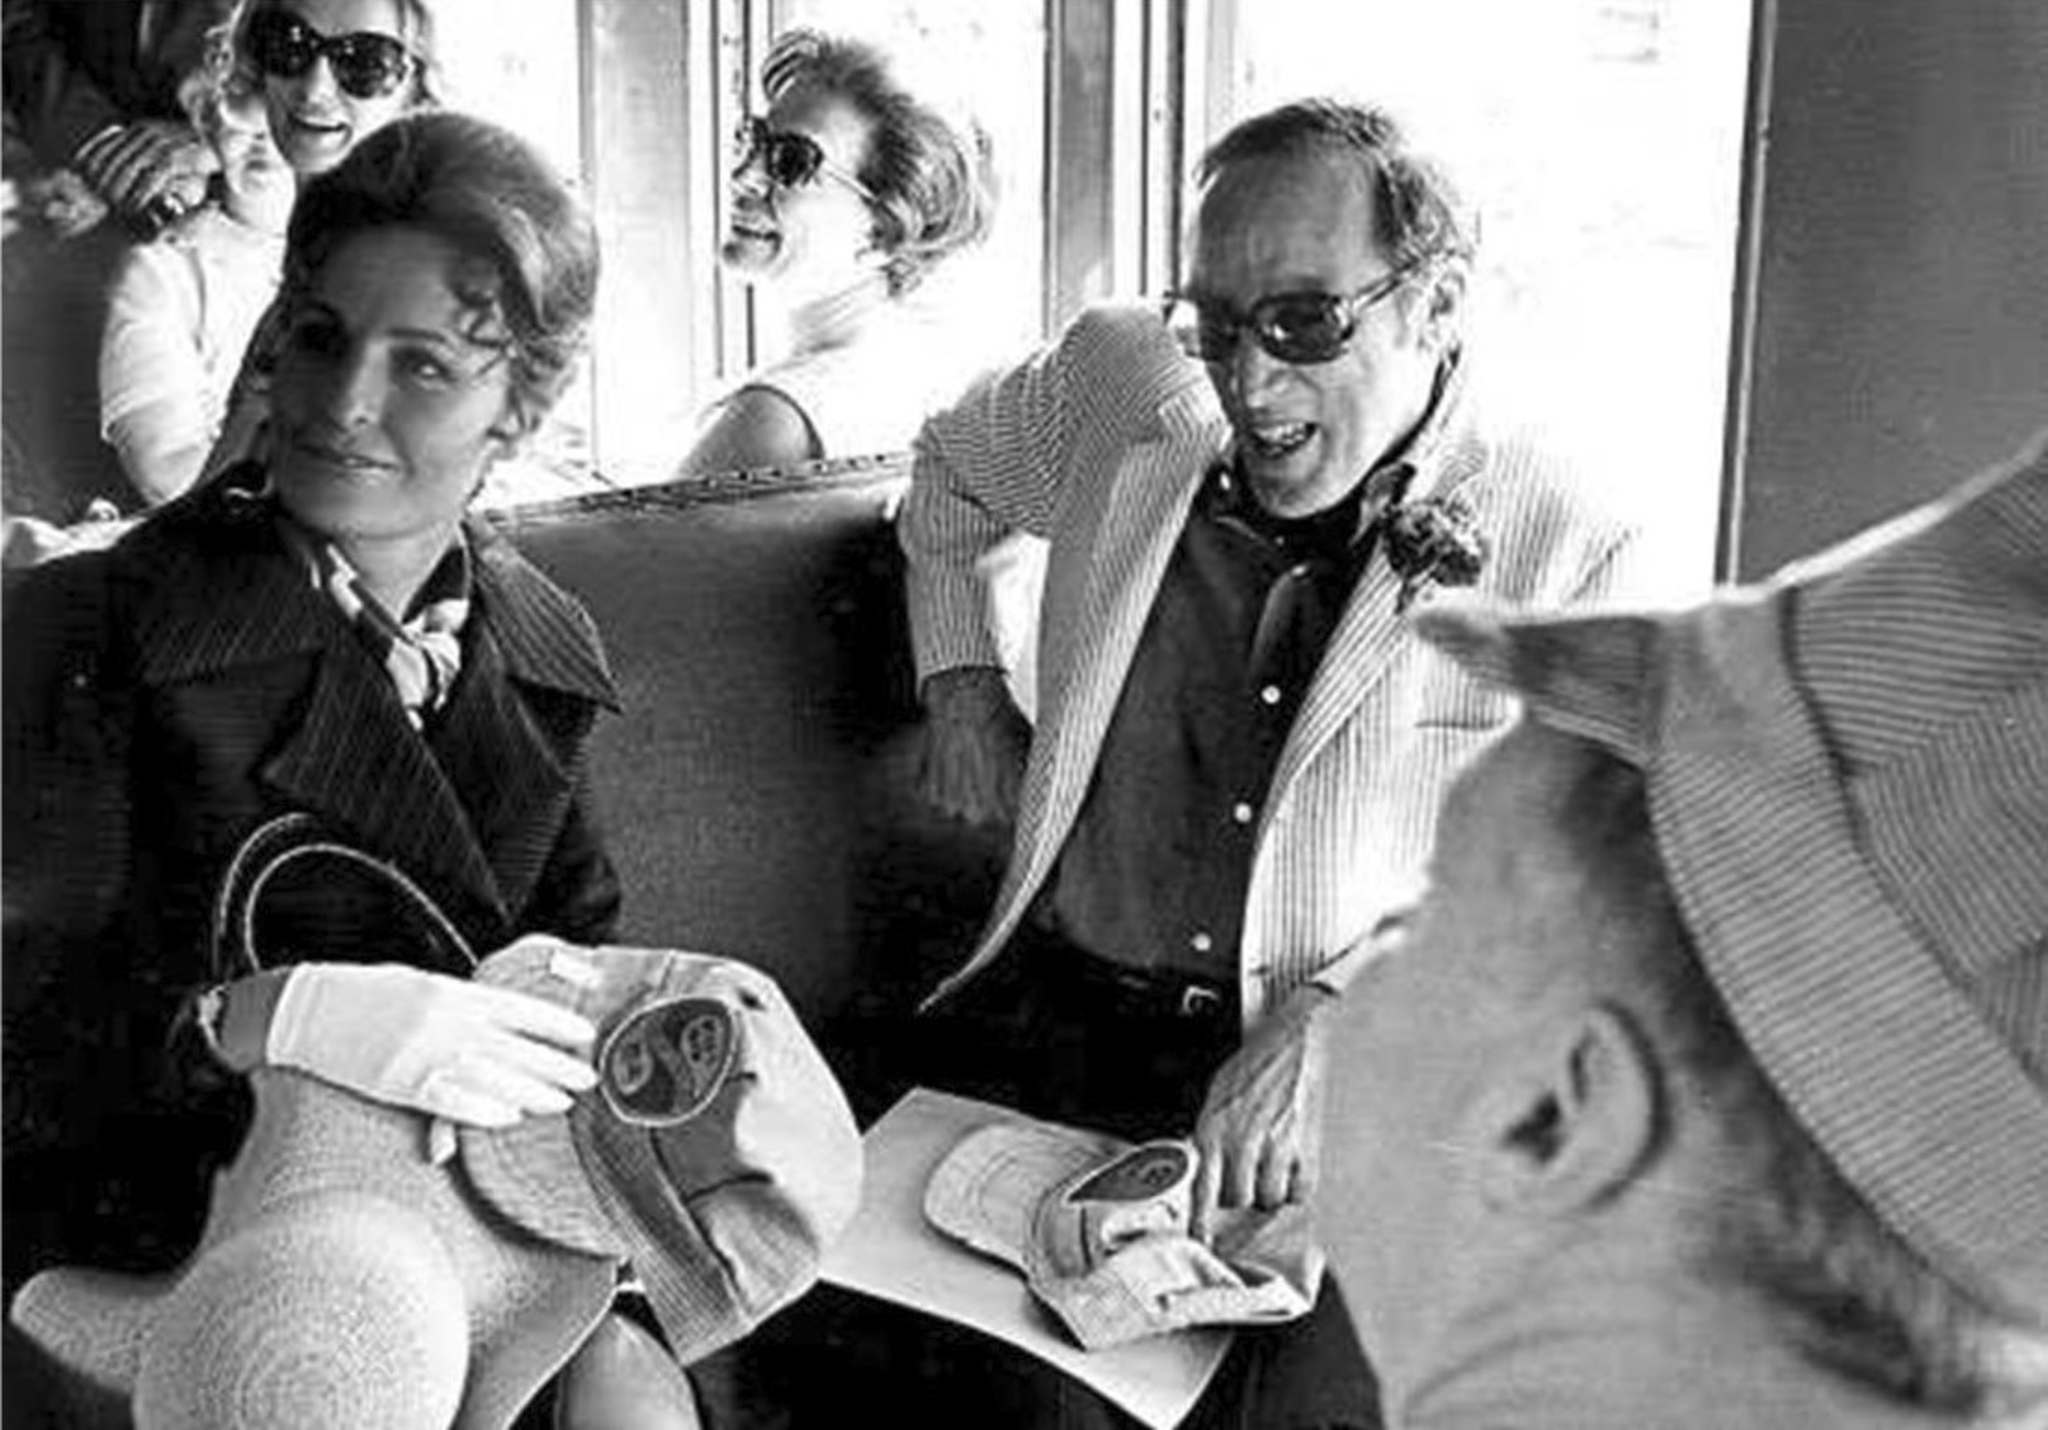 GERRY CAIRNS / WINNIPEG FREE PRESS FILES</p><p>Lily Schreyer, wife of Manitoba's premier Ed Schreyer, and prime minister Pierre Trudeau aboard the Prairie Dog Central as it chugged on to Lower Fort Garry in 1970.</p>